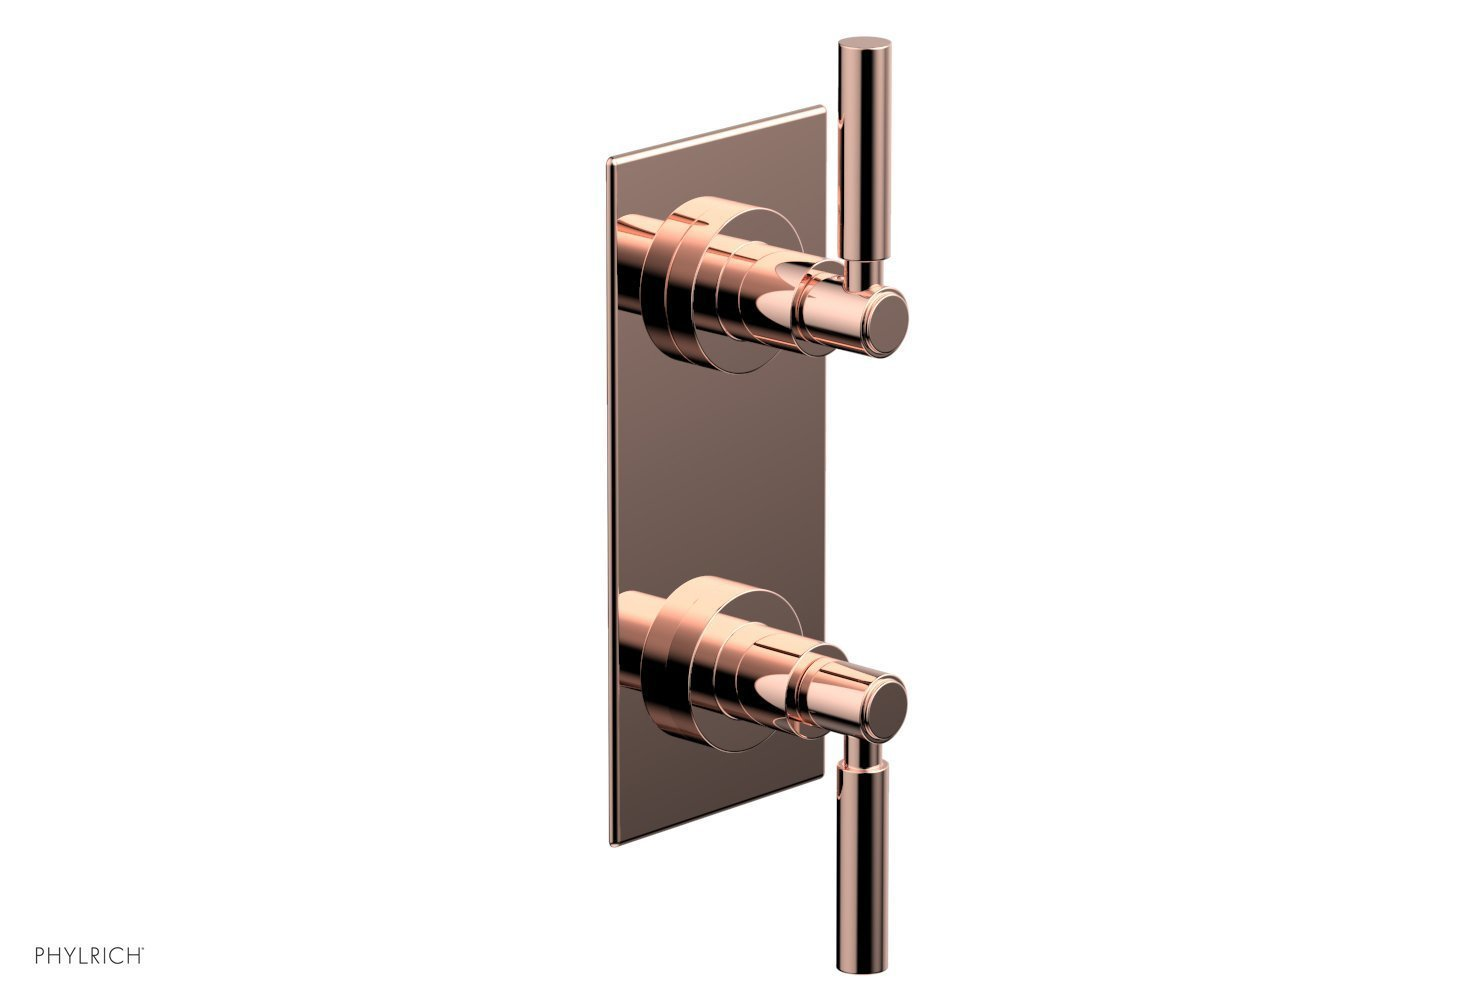 """BASIC 1/2"""" Thermostatic Valve with Volume Control or Diverter Lever Handles 4-344 - Polished Copper"""